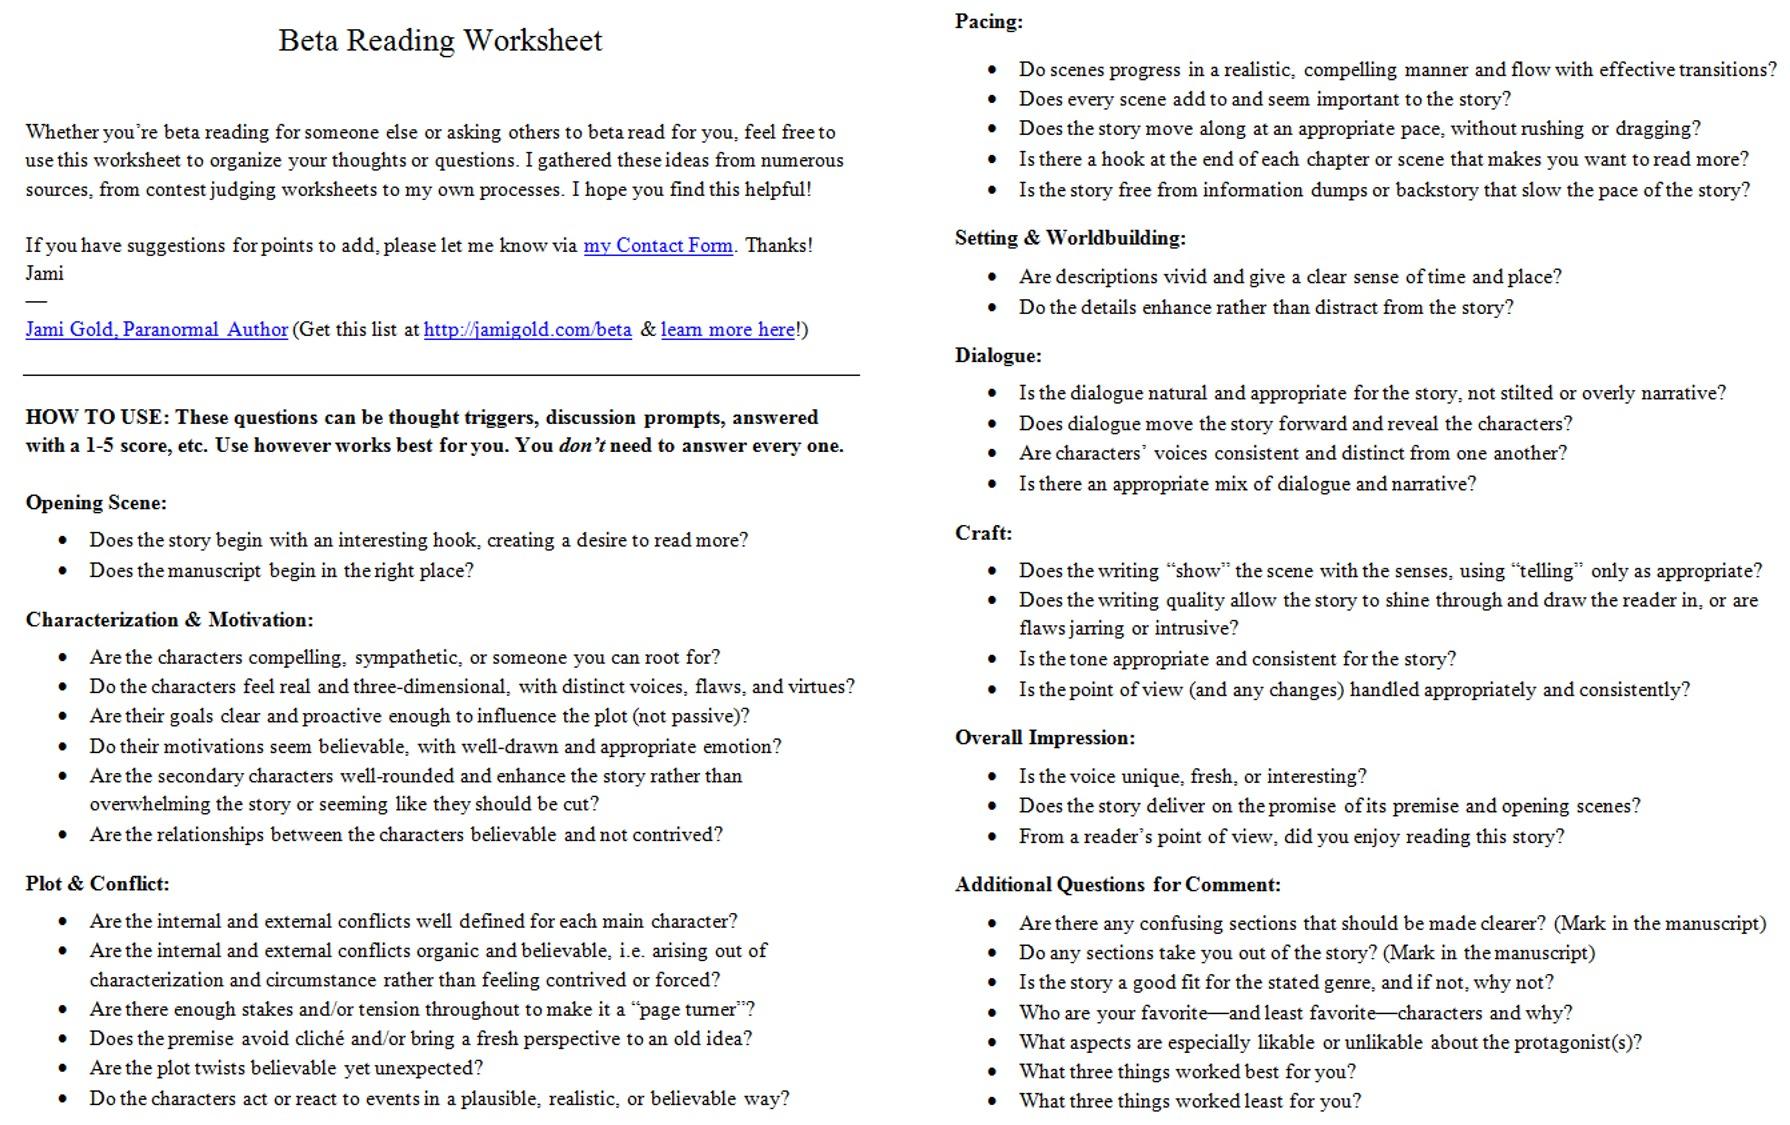 Aldiablosus  Inspiring Worksheets For Writers  Jami Gold Paranormal Author With Inspiring Screen Shot Of The Twopage Beta Reading Worksheet With Beauteous Twelfth Night Worksheets Also Phonics Worksheets For Kindergarten Free In Addition Place Value Worksheets For Third Grade And Past And Future Tense Worksheets As Well As Math Sets And Subsets Worksheets Additionally Easter Worksheets Kindergarten From Jamigoldcom With Aldiablosus  Inspiring Worksheets For Writers  Jami Gold Paranormal Author With Beauteous Screen Shot Of The Twopage Beta Reading Worksheet And Inspiring Twelfth Night Worksheets Also Phonics Worksheets For Kindergarten Free In Addition Place Value Worksheets For Third Grade From Jamigoldcom